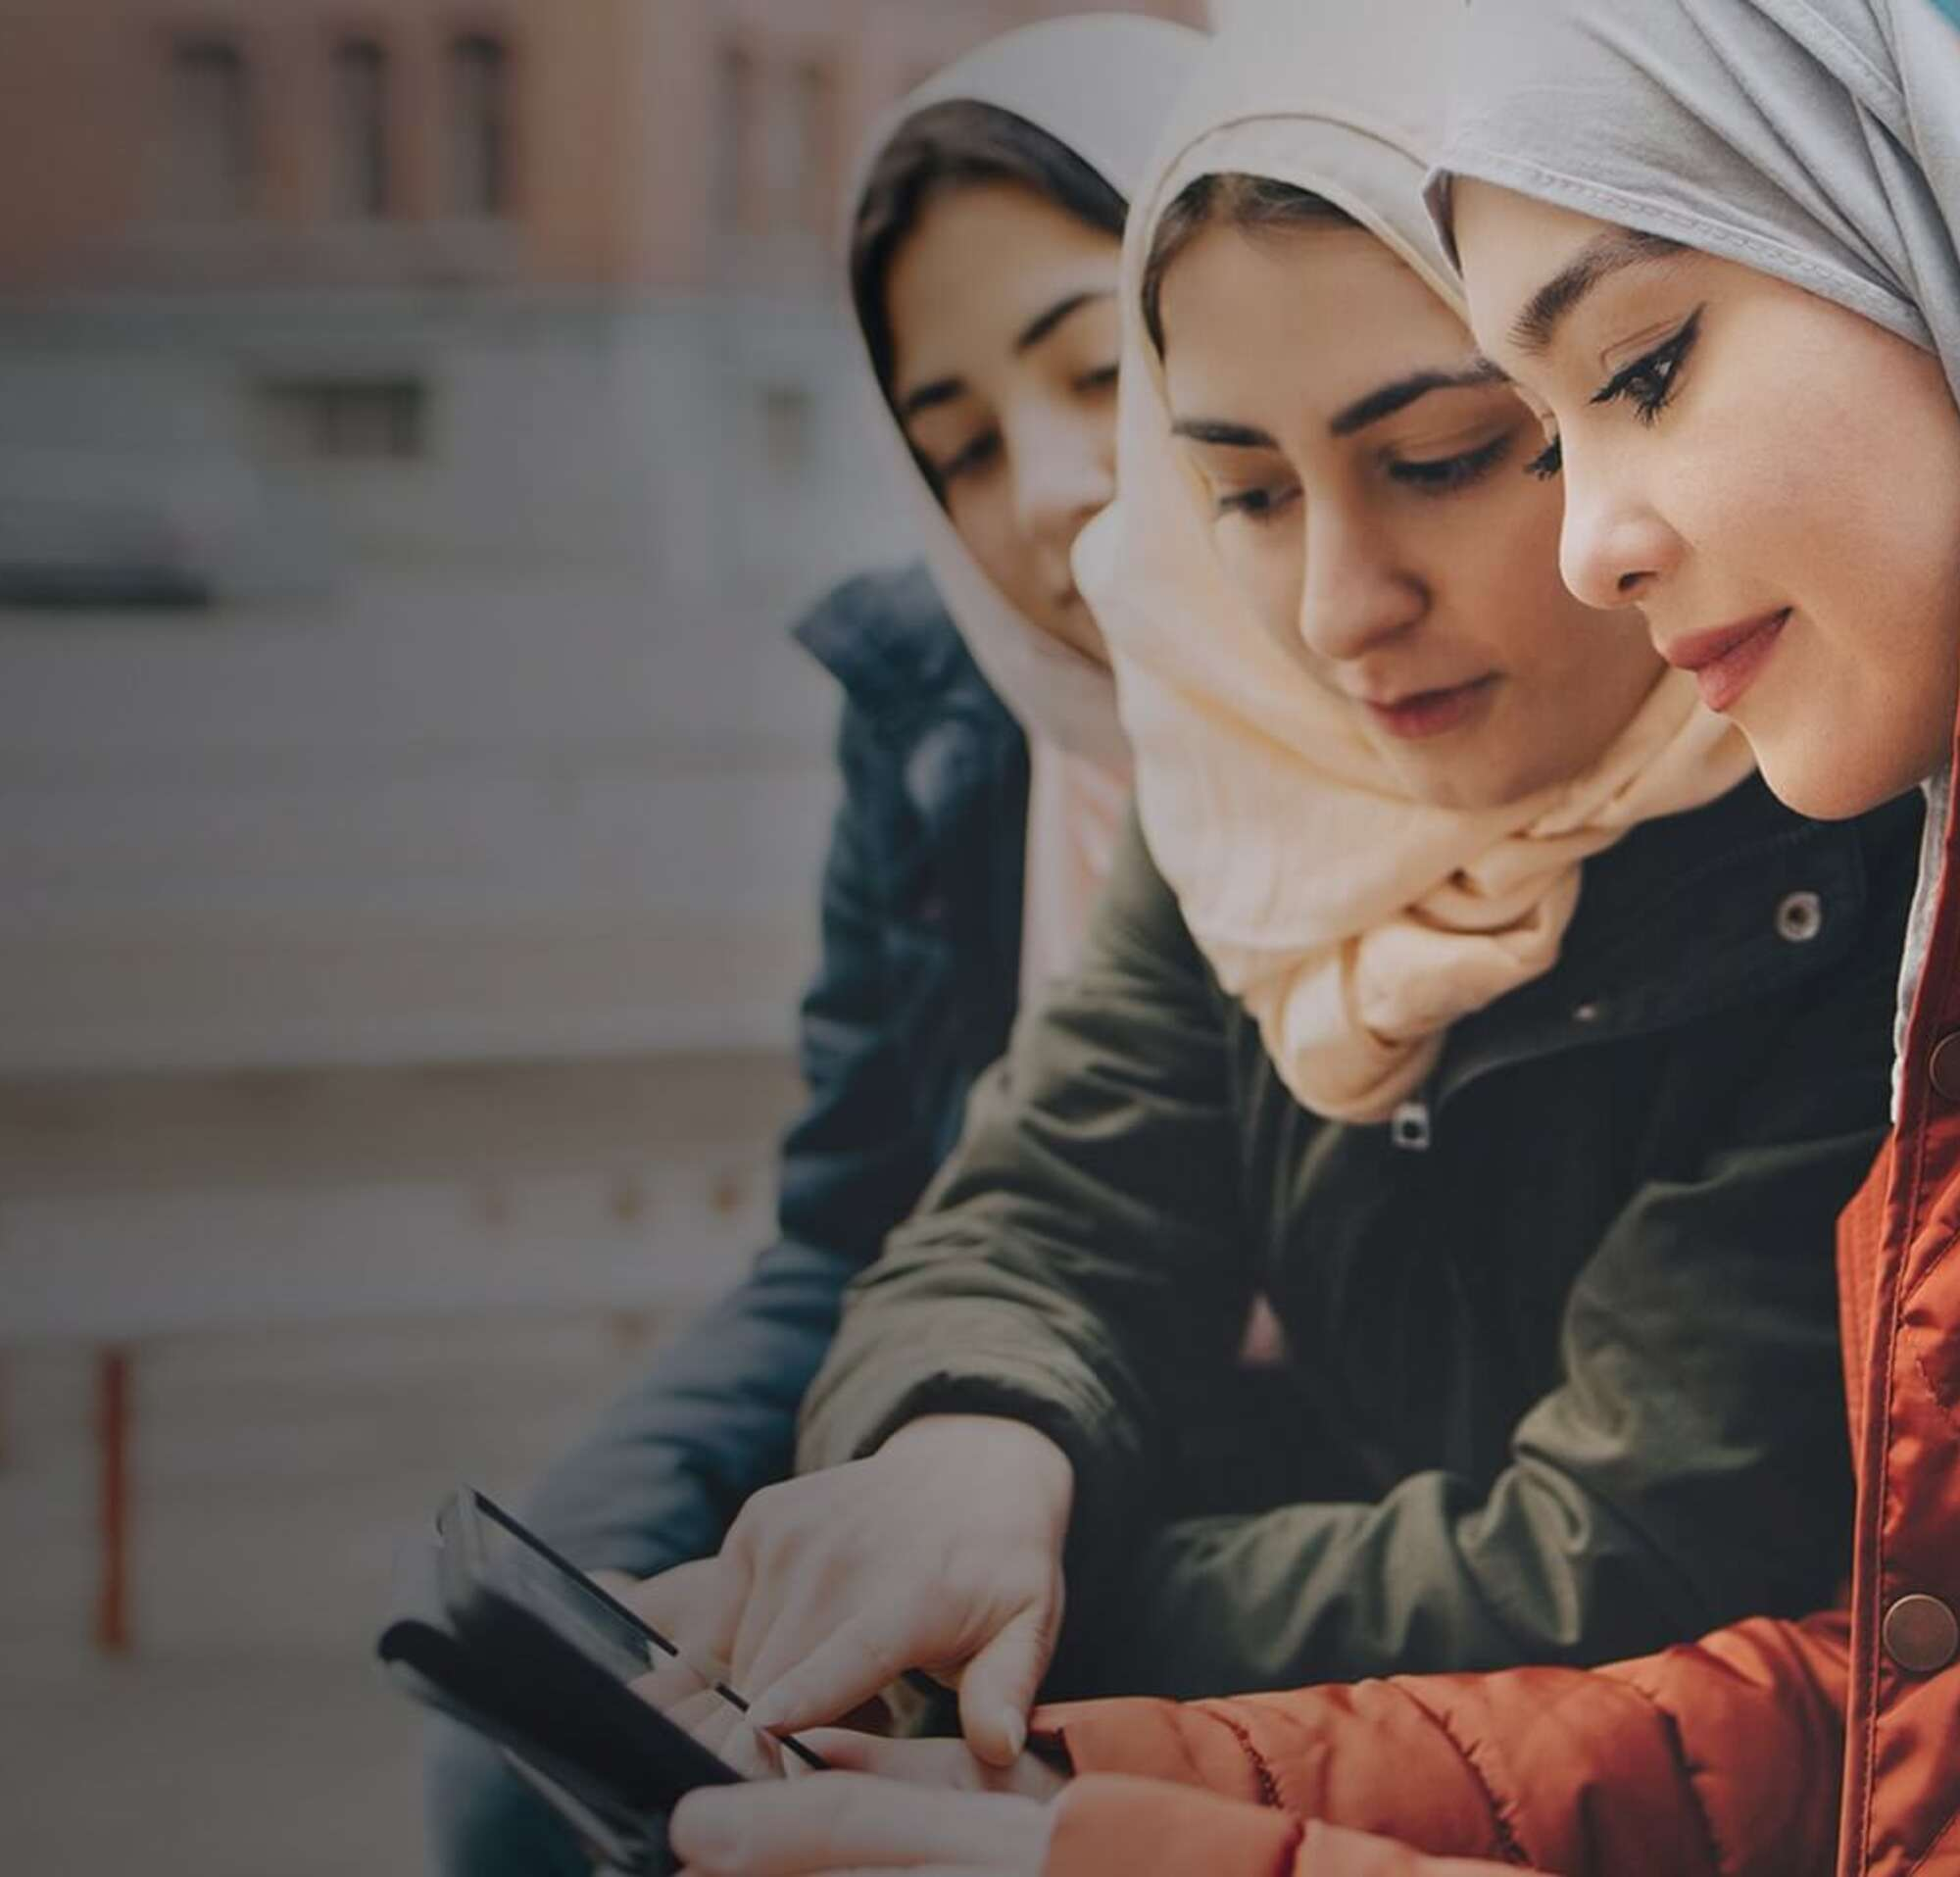 Four young women on a bench outside looking at a mobile device together.